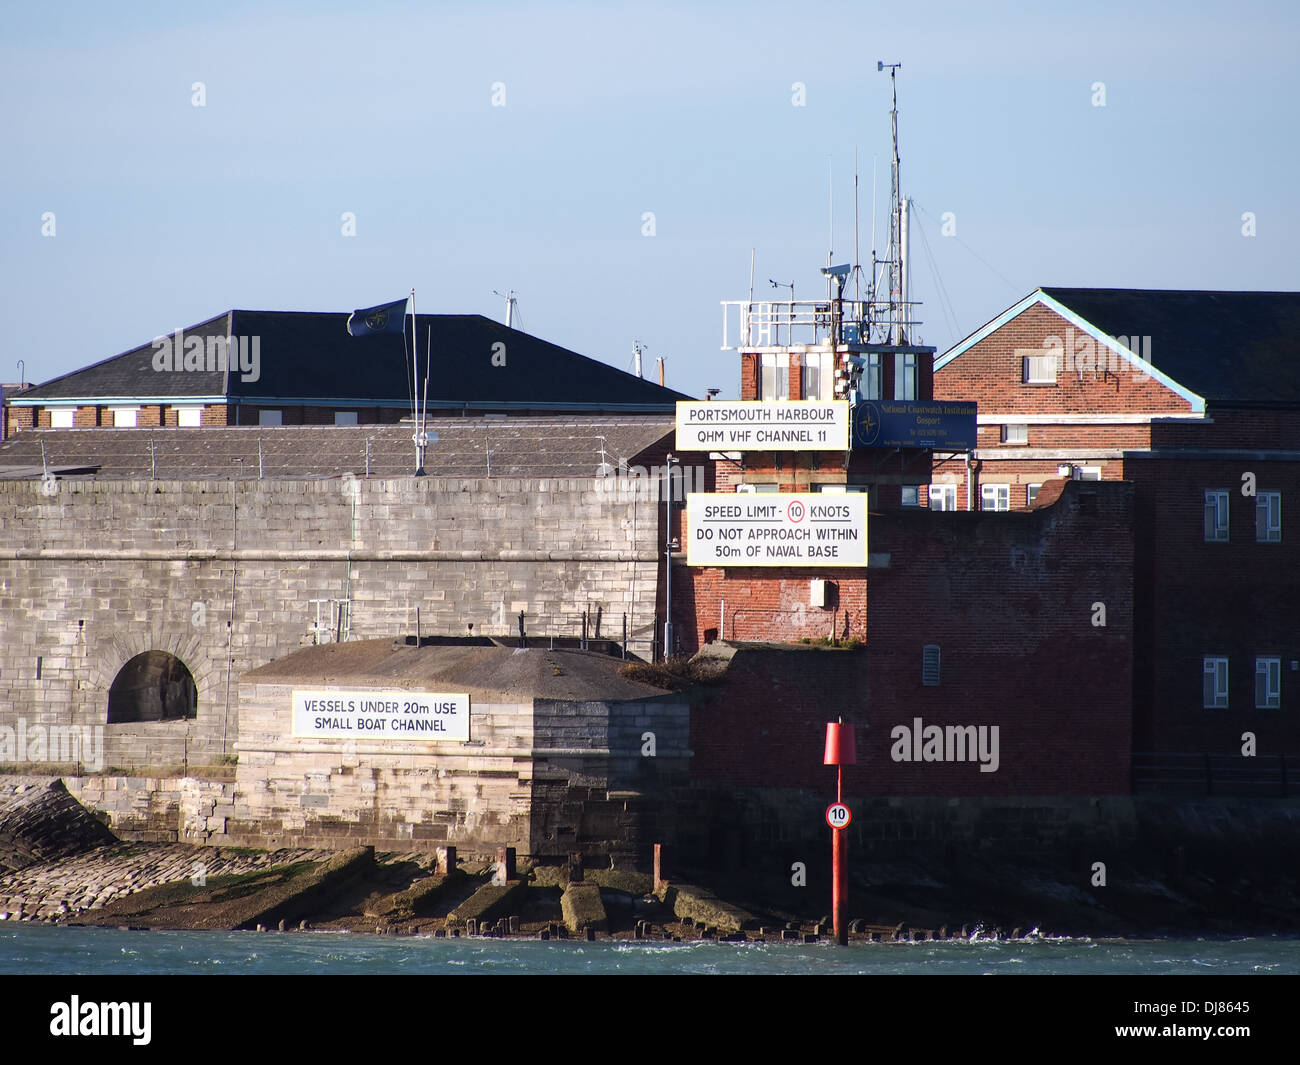 The perimeter wall of  Fort Blockhouse and The entrance to Portsmouth Harbour with instructions for shipping - Stock Image